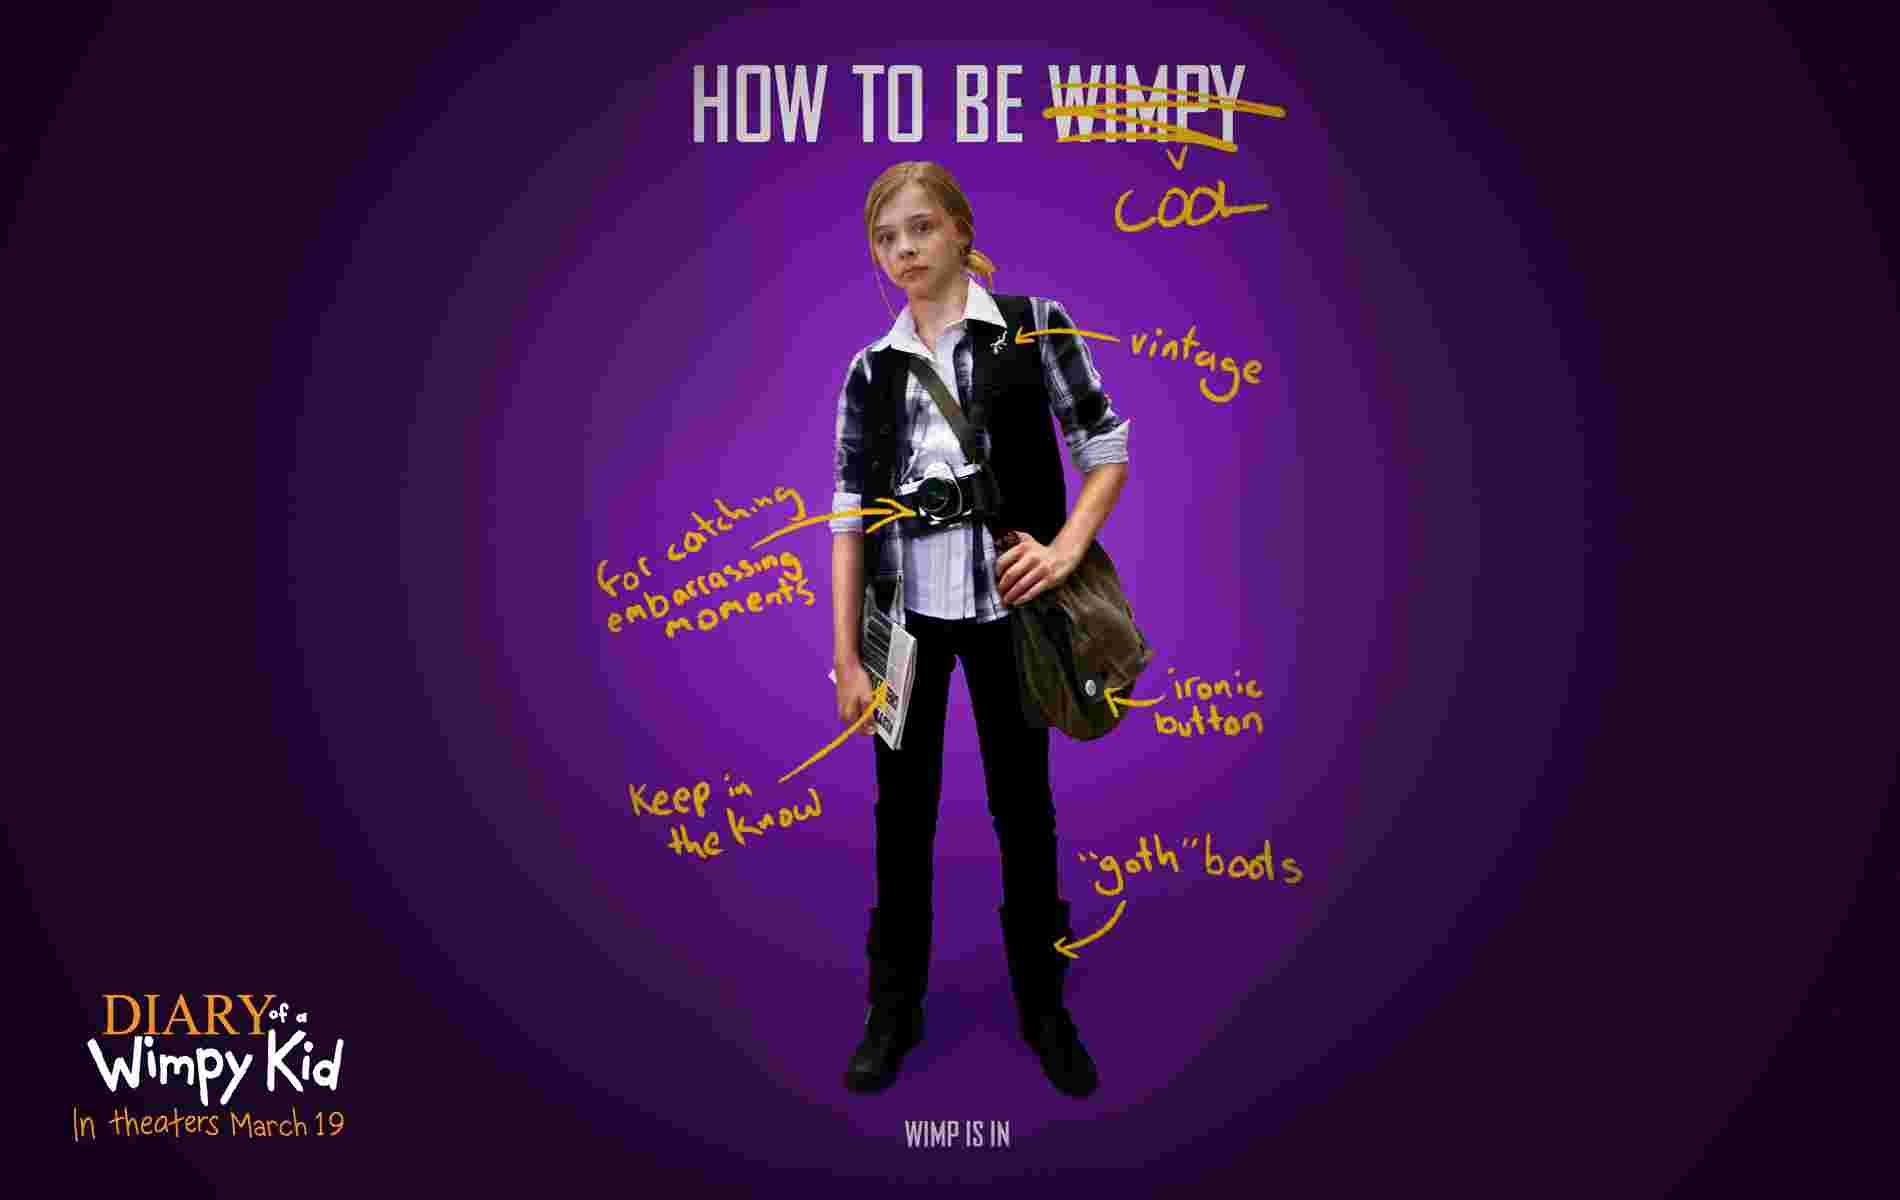 Chloe Moretz Diary Of A Wimpy Kid Chloe Moretz In Diary Of A